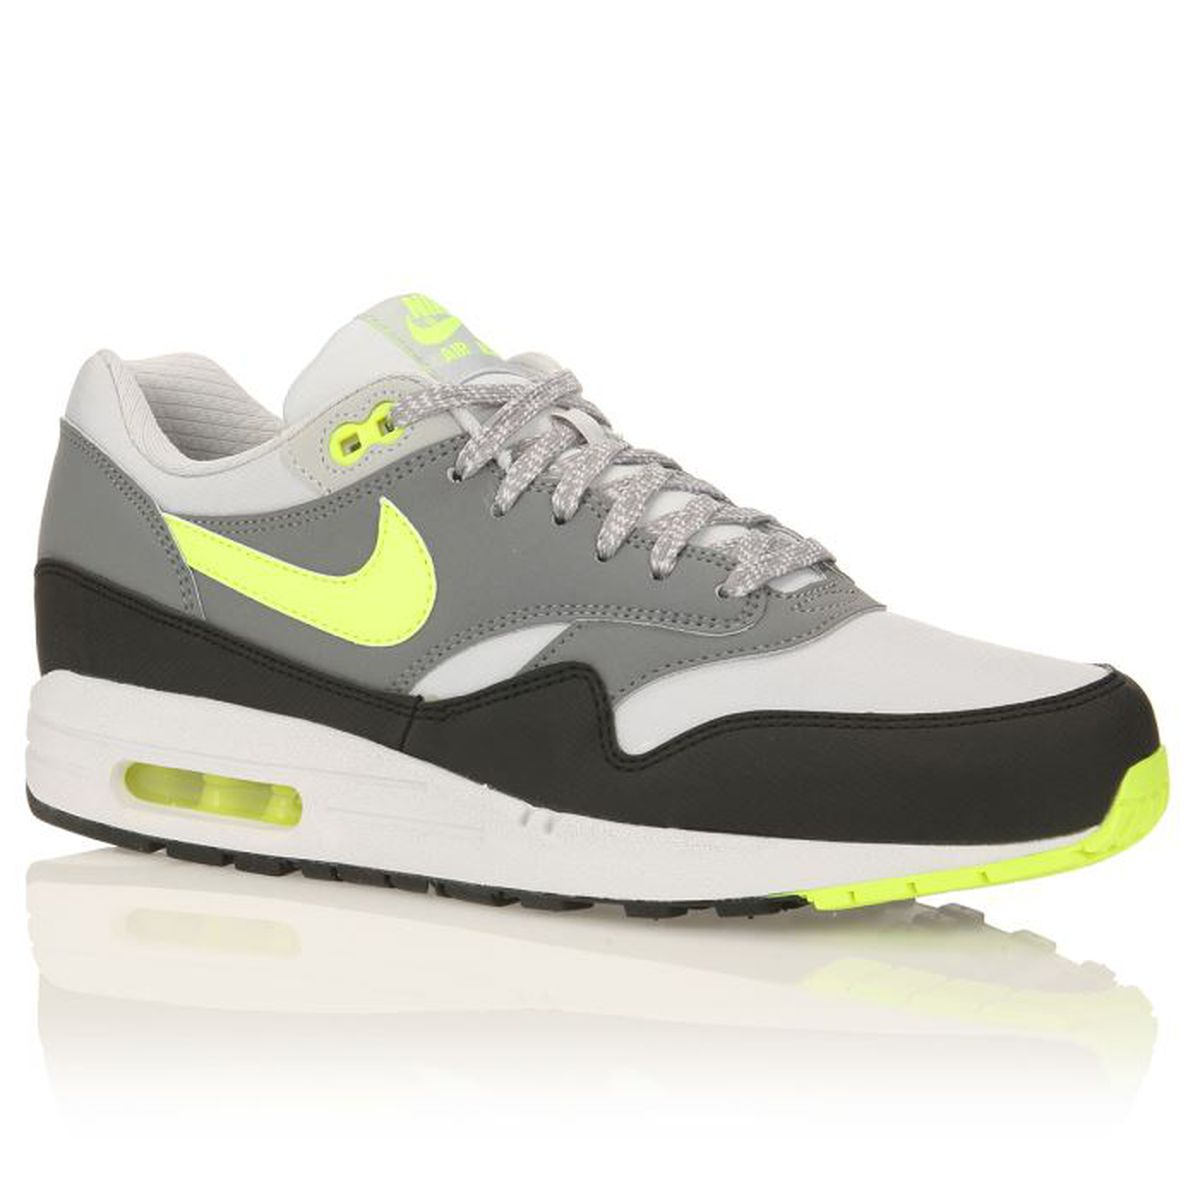 nike air max jaune fluo pas cher jordans retro chaussures. Black Bedroom Furniture Sets. Home Design Ideas